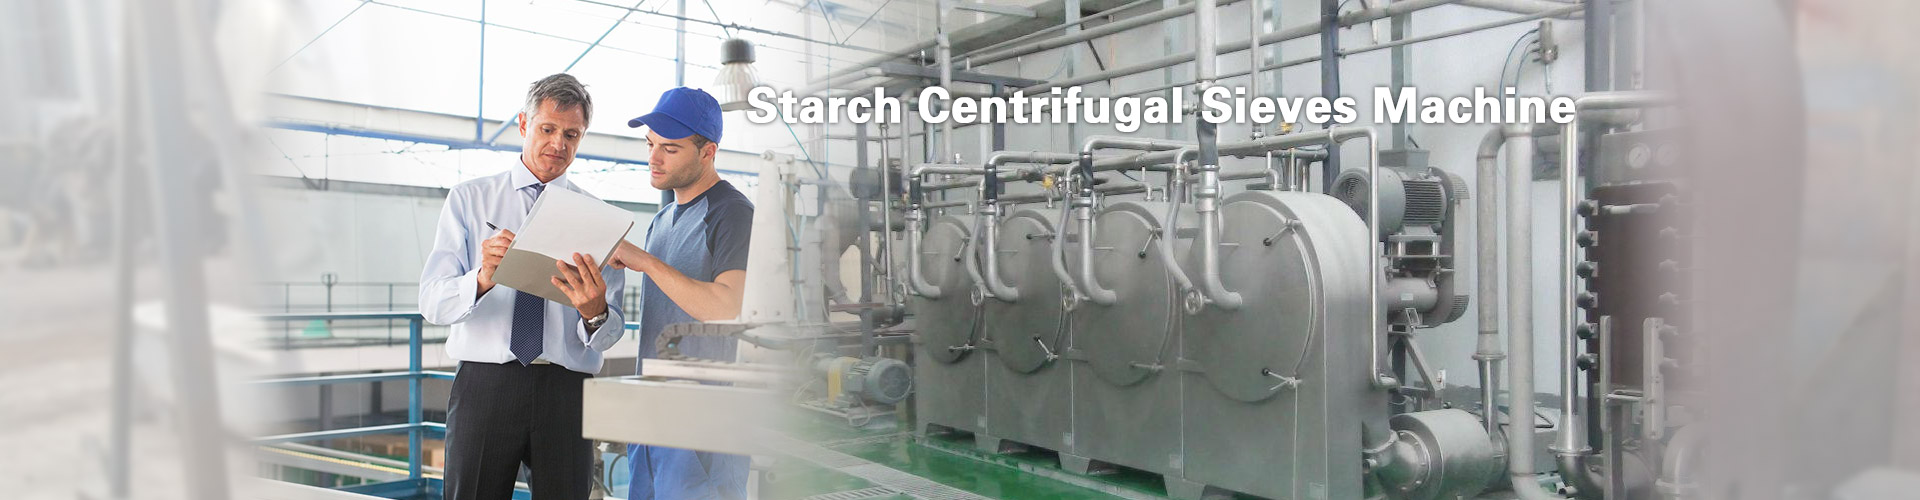 Starch Centrifugal Sieves| Starch Production Machine